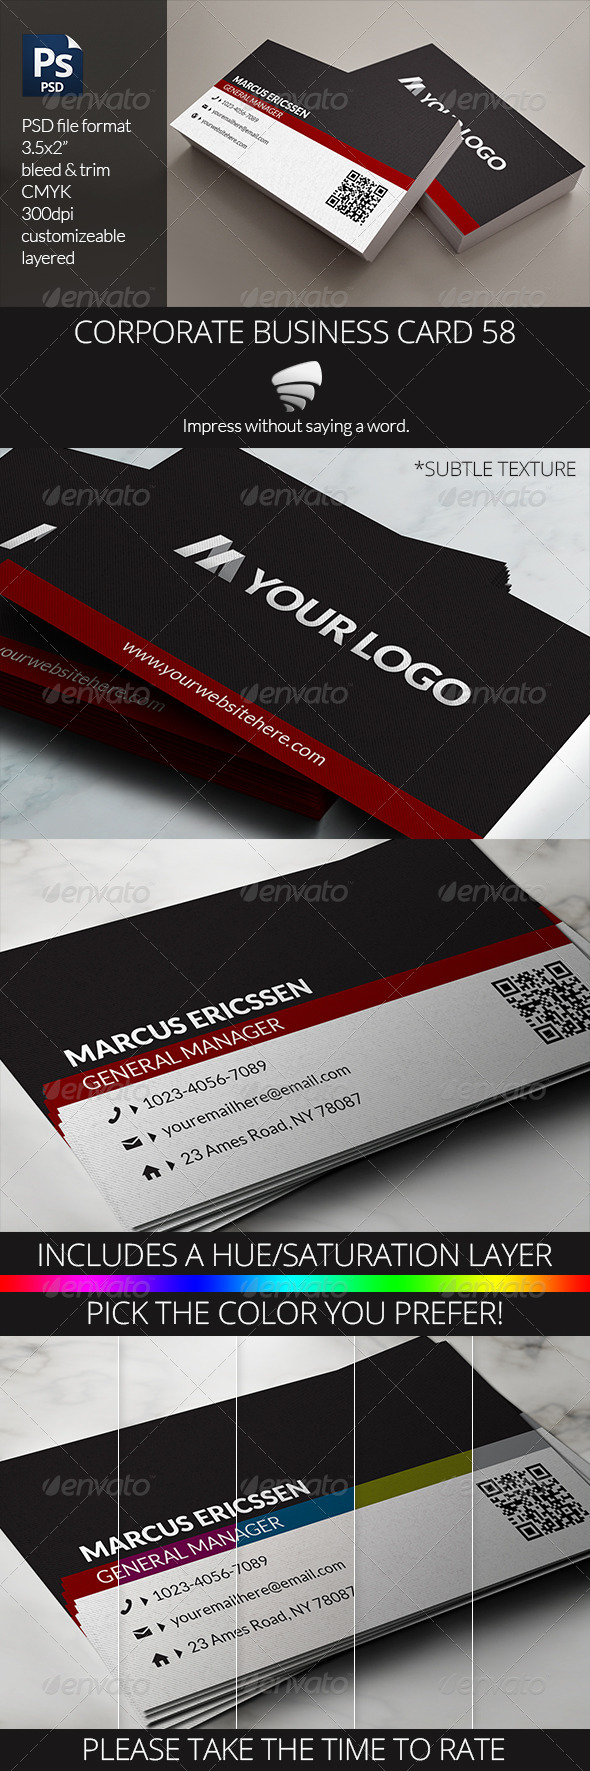 Corporate Business Card 58